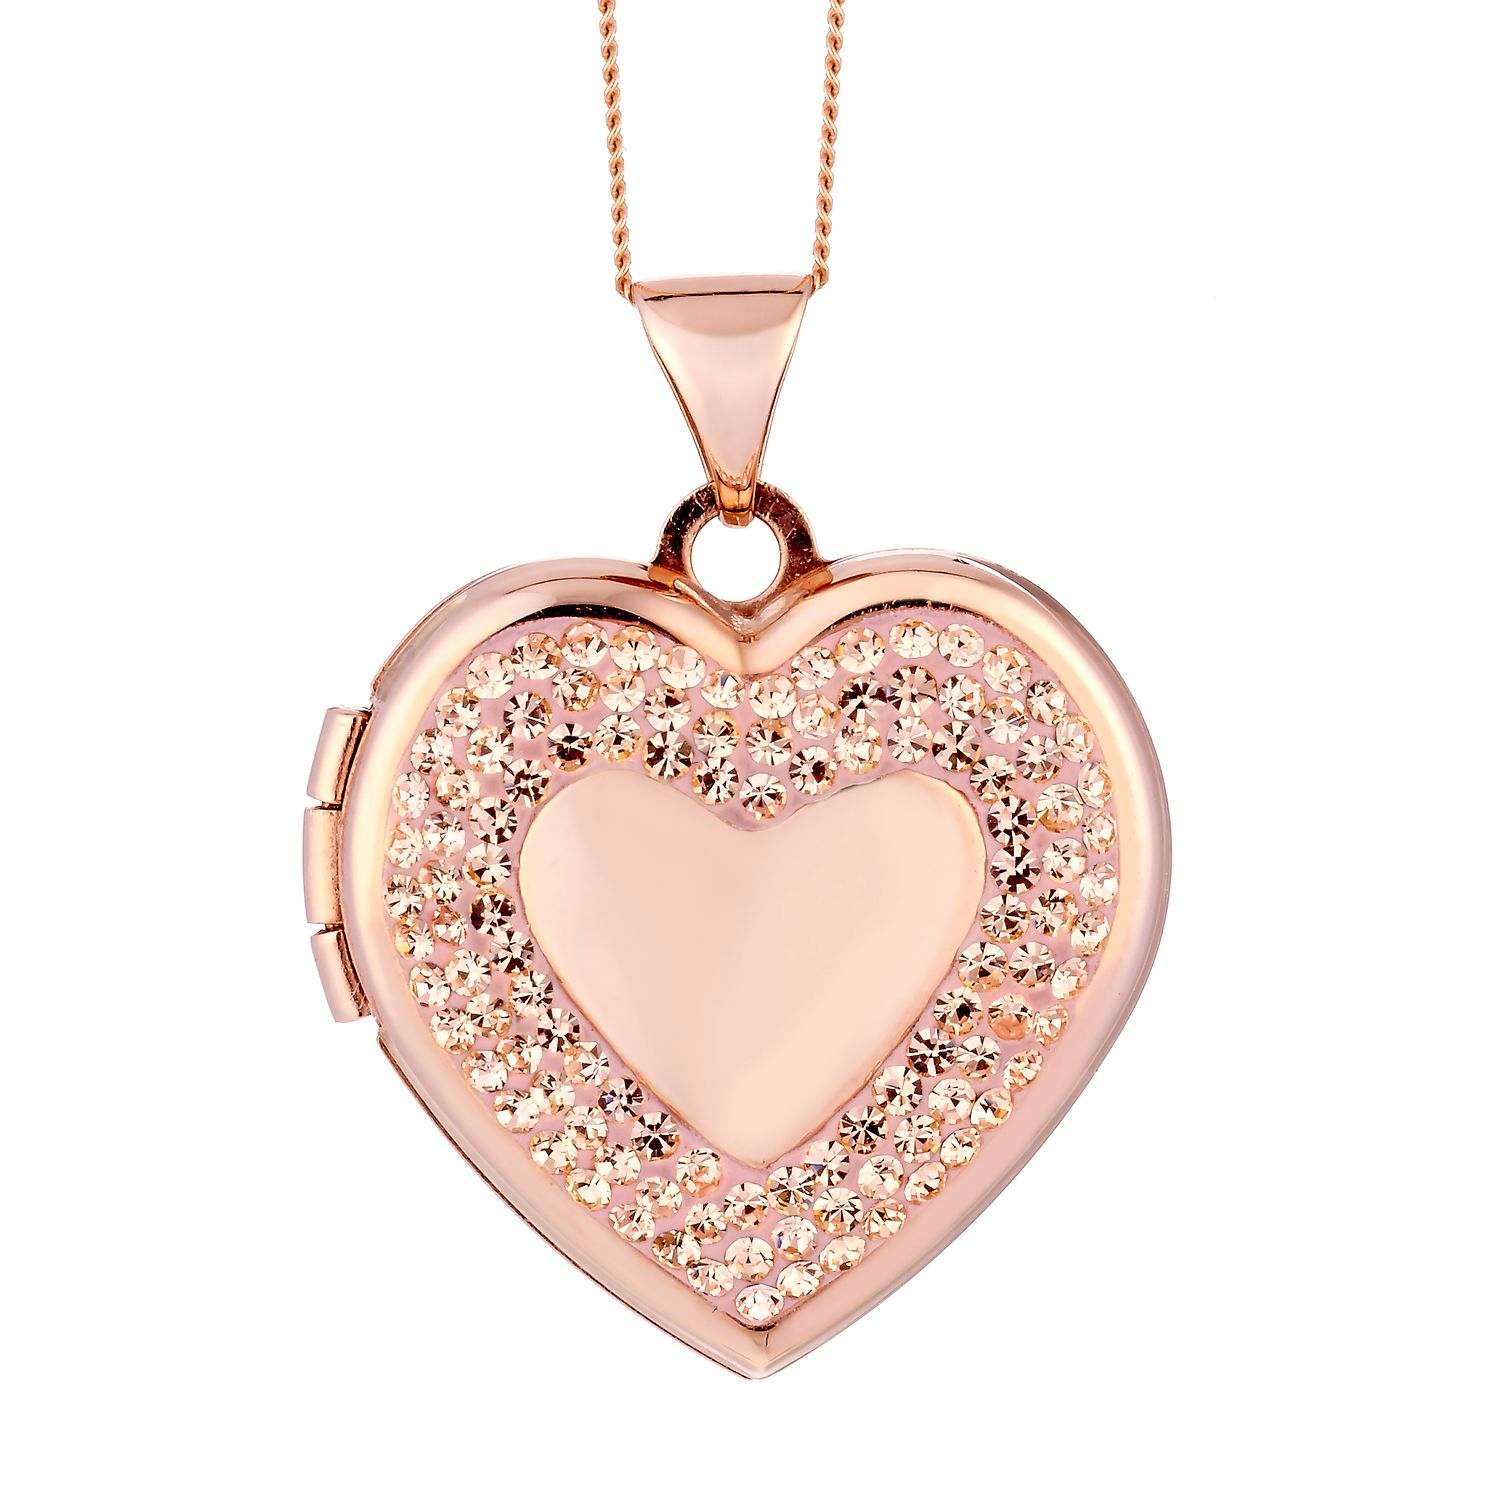 9ct Rose Gold & Champagne Crystal Heart Locket - Product number 2300834